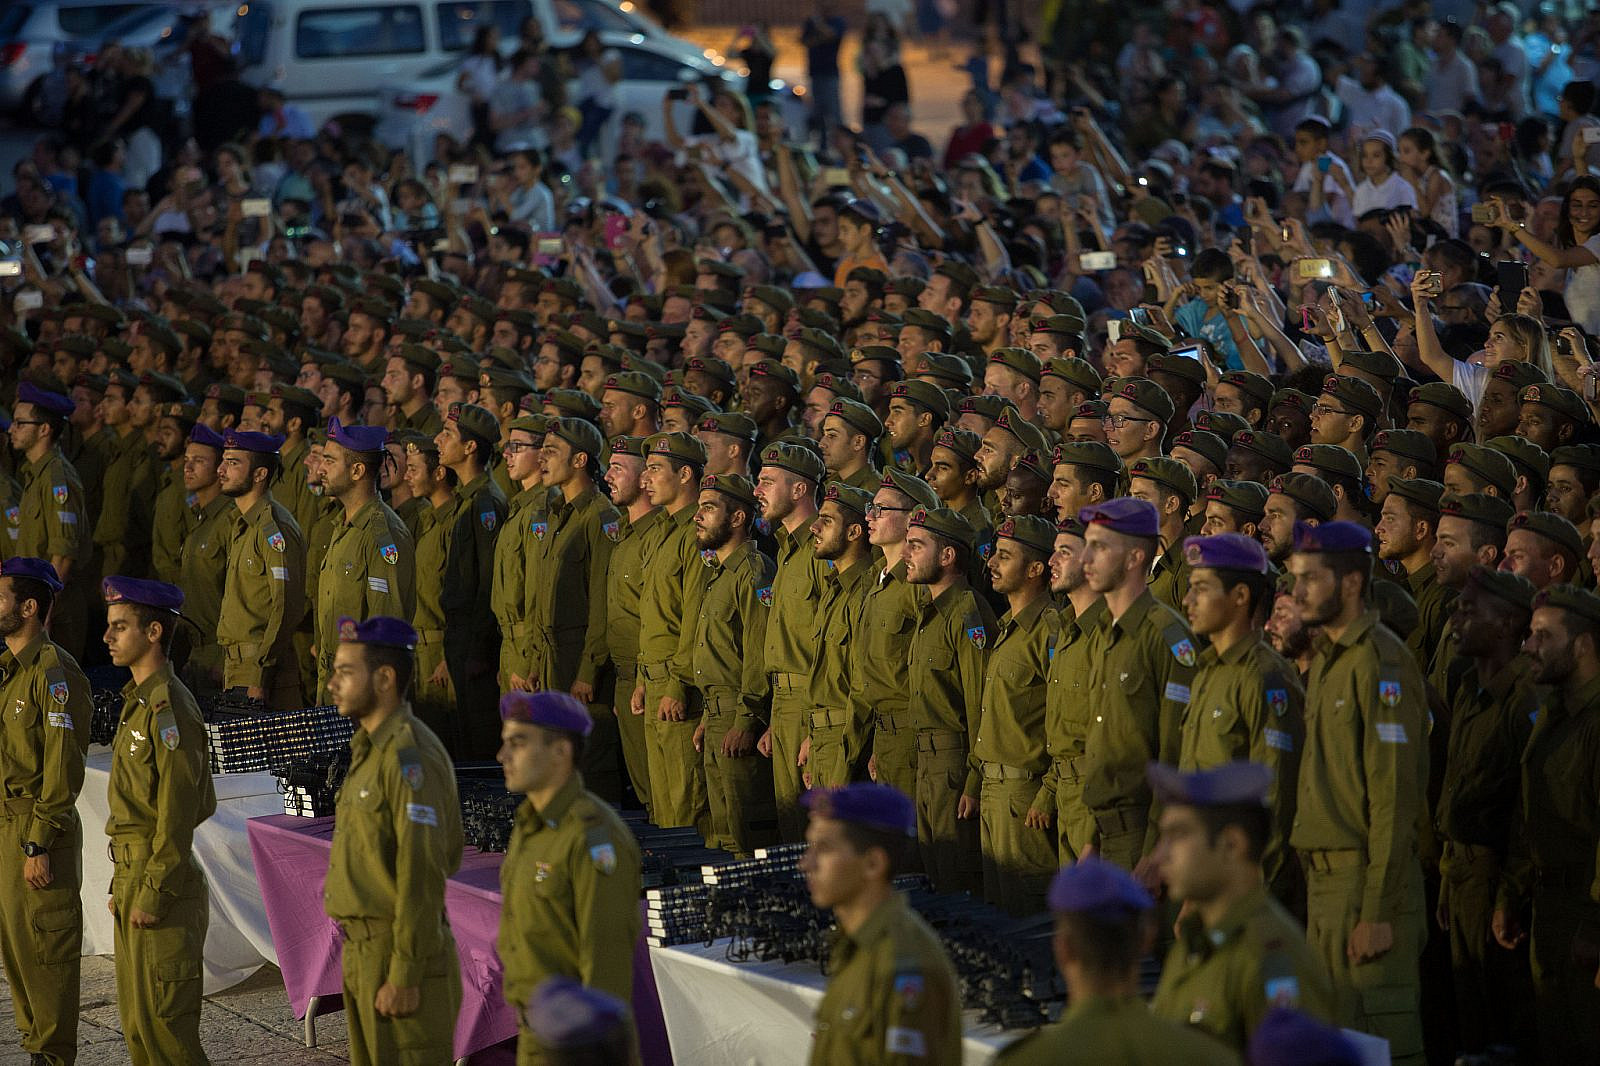 Israeli soldiers attend a swearing-in ceremony as they enter the Givati Brigade unit, at the Western Wall in Jerusalem Old City, June 23, 2016. (Flash90)